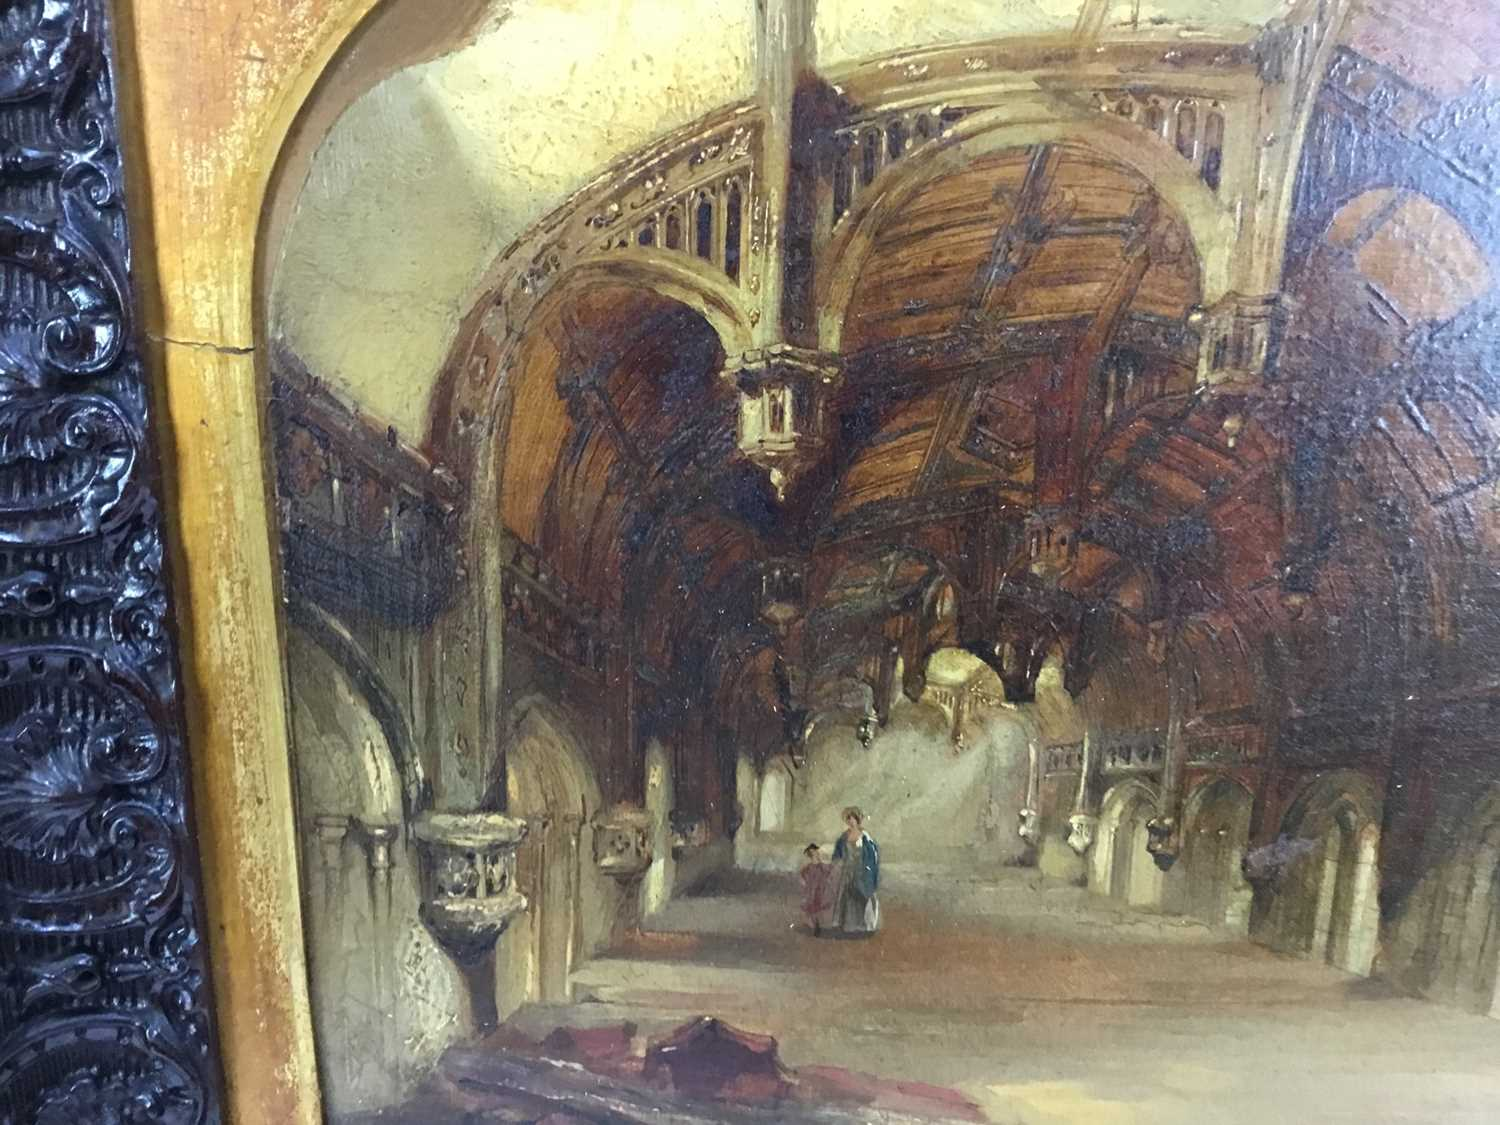 Daniel I Pasmore (act. 1829-1865) oil on canvas 'Crosby Hall', signed and dated 1836, 29 x 39cm, car - Image 7 of 10